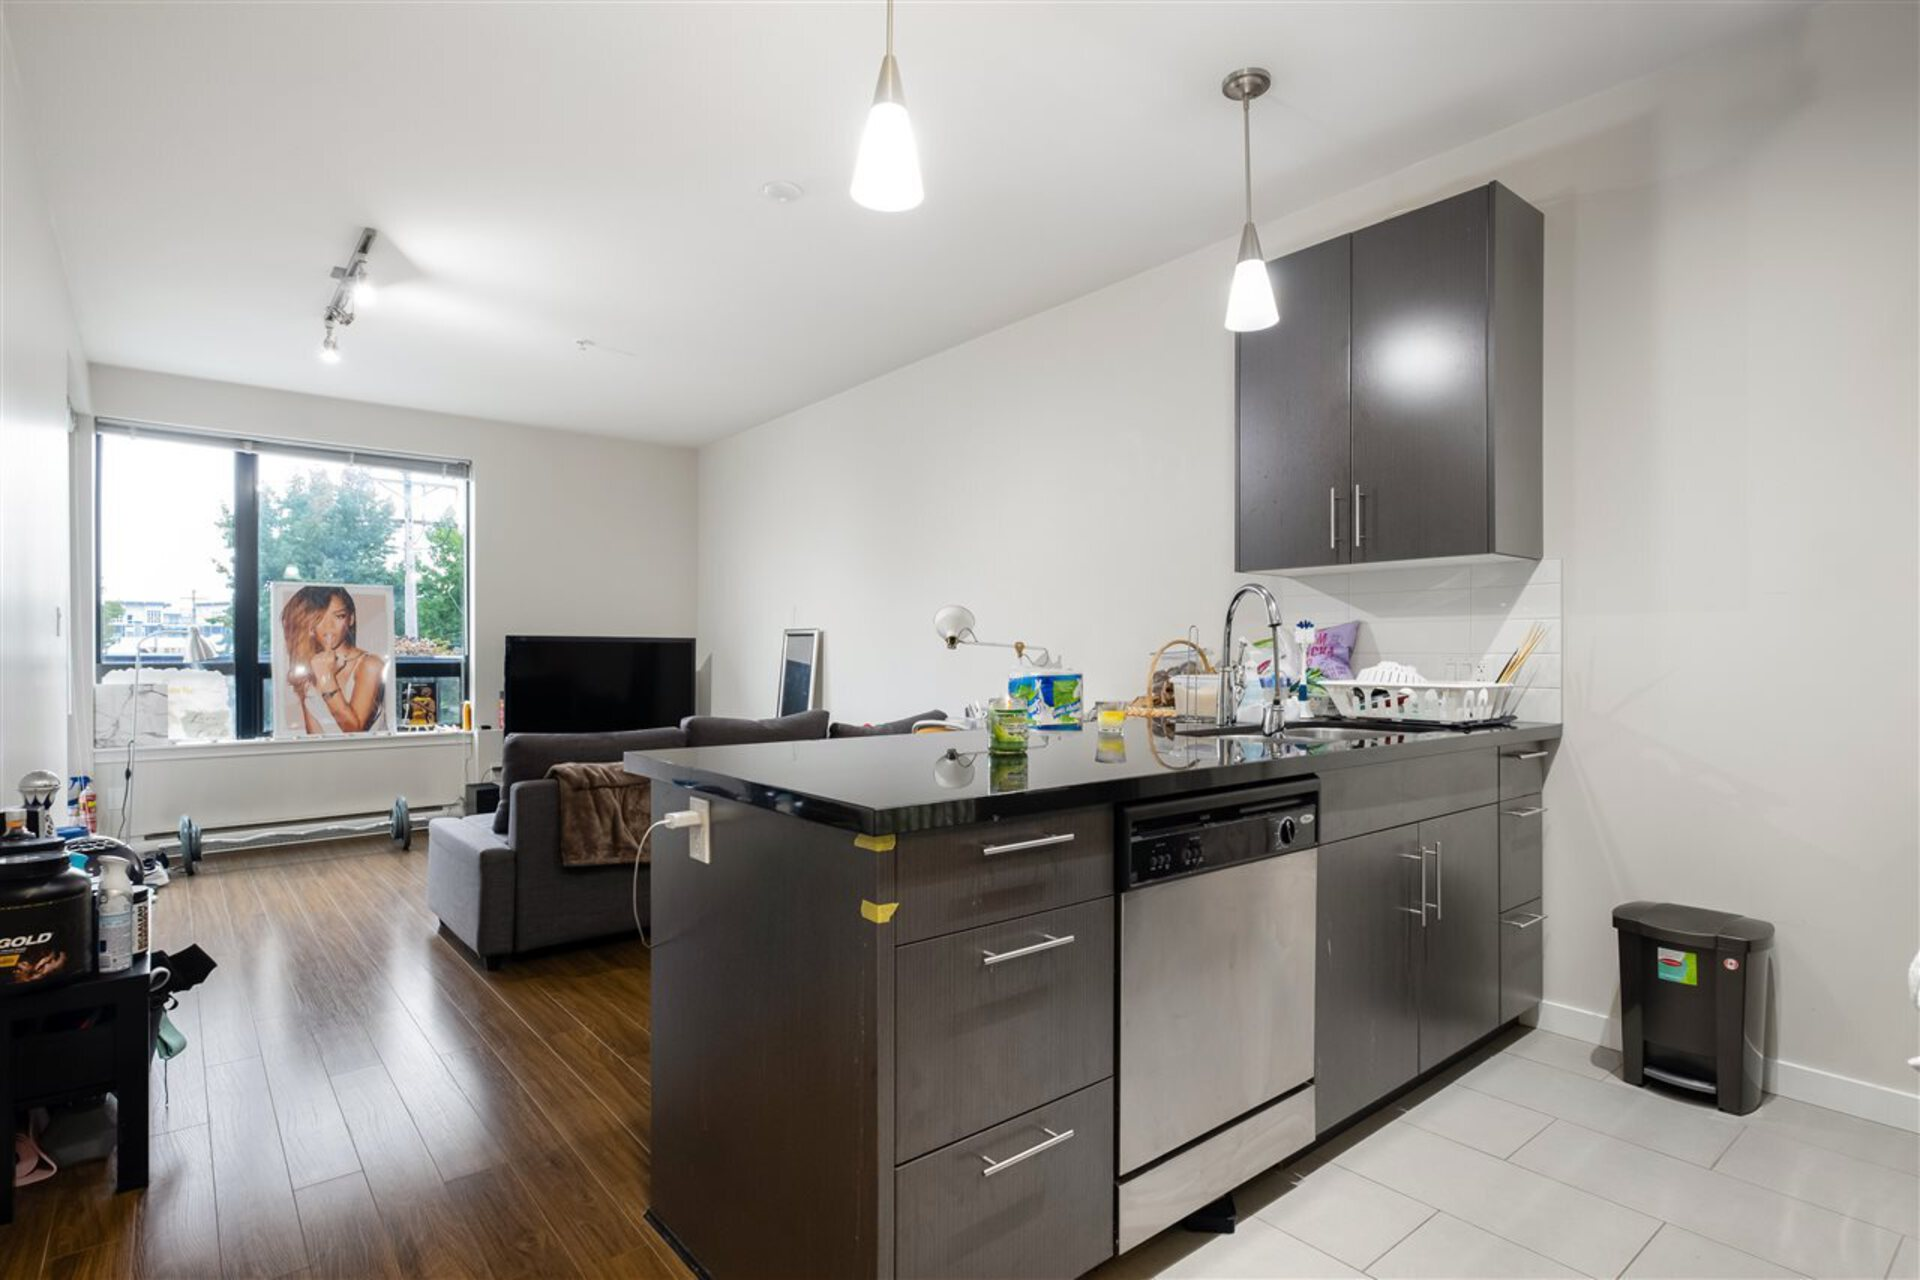 5211-grimmer-street-metrotown-burnaby-south-16 at 208 - 5211 Grimmer Street, Metrotown, Burnaby South